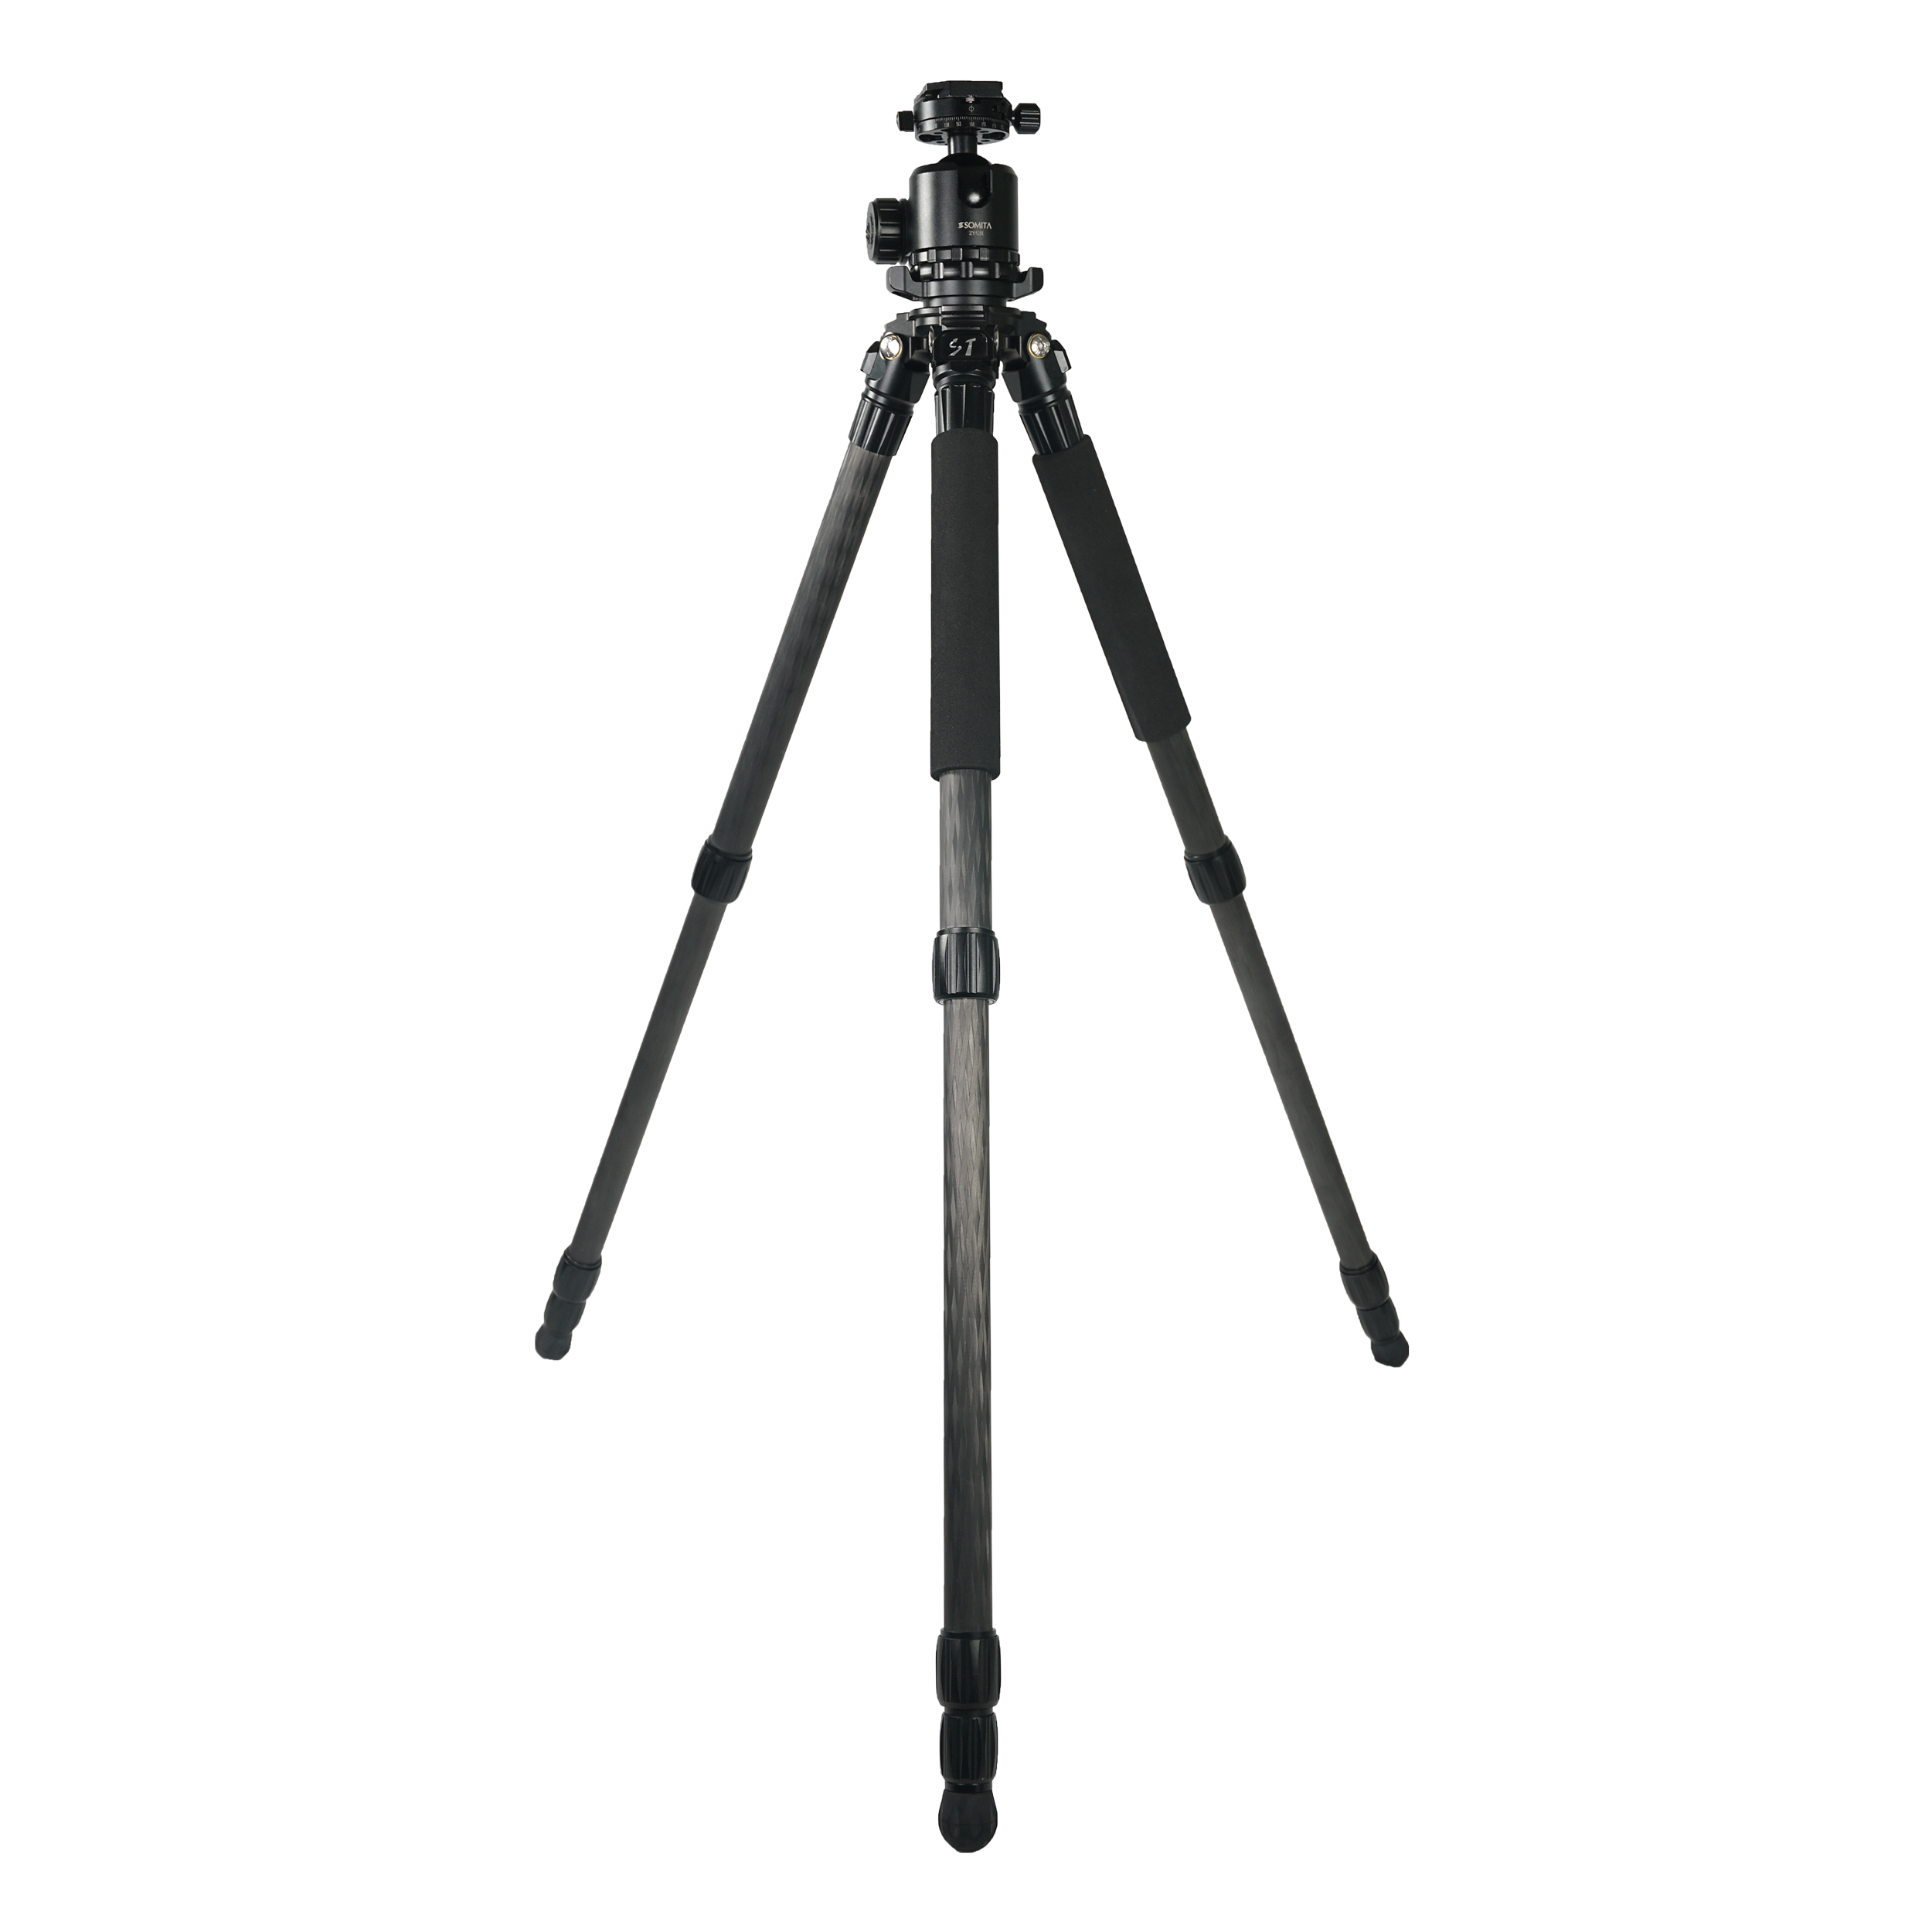 Somita St-333 Professional Carbon Fiber Photo/Video Tripod with Ball Head